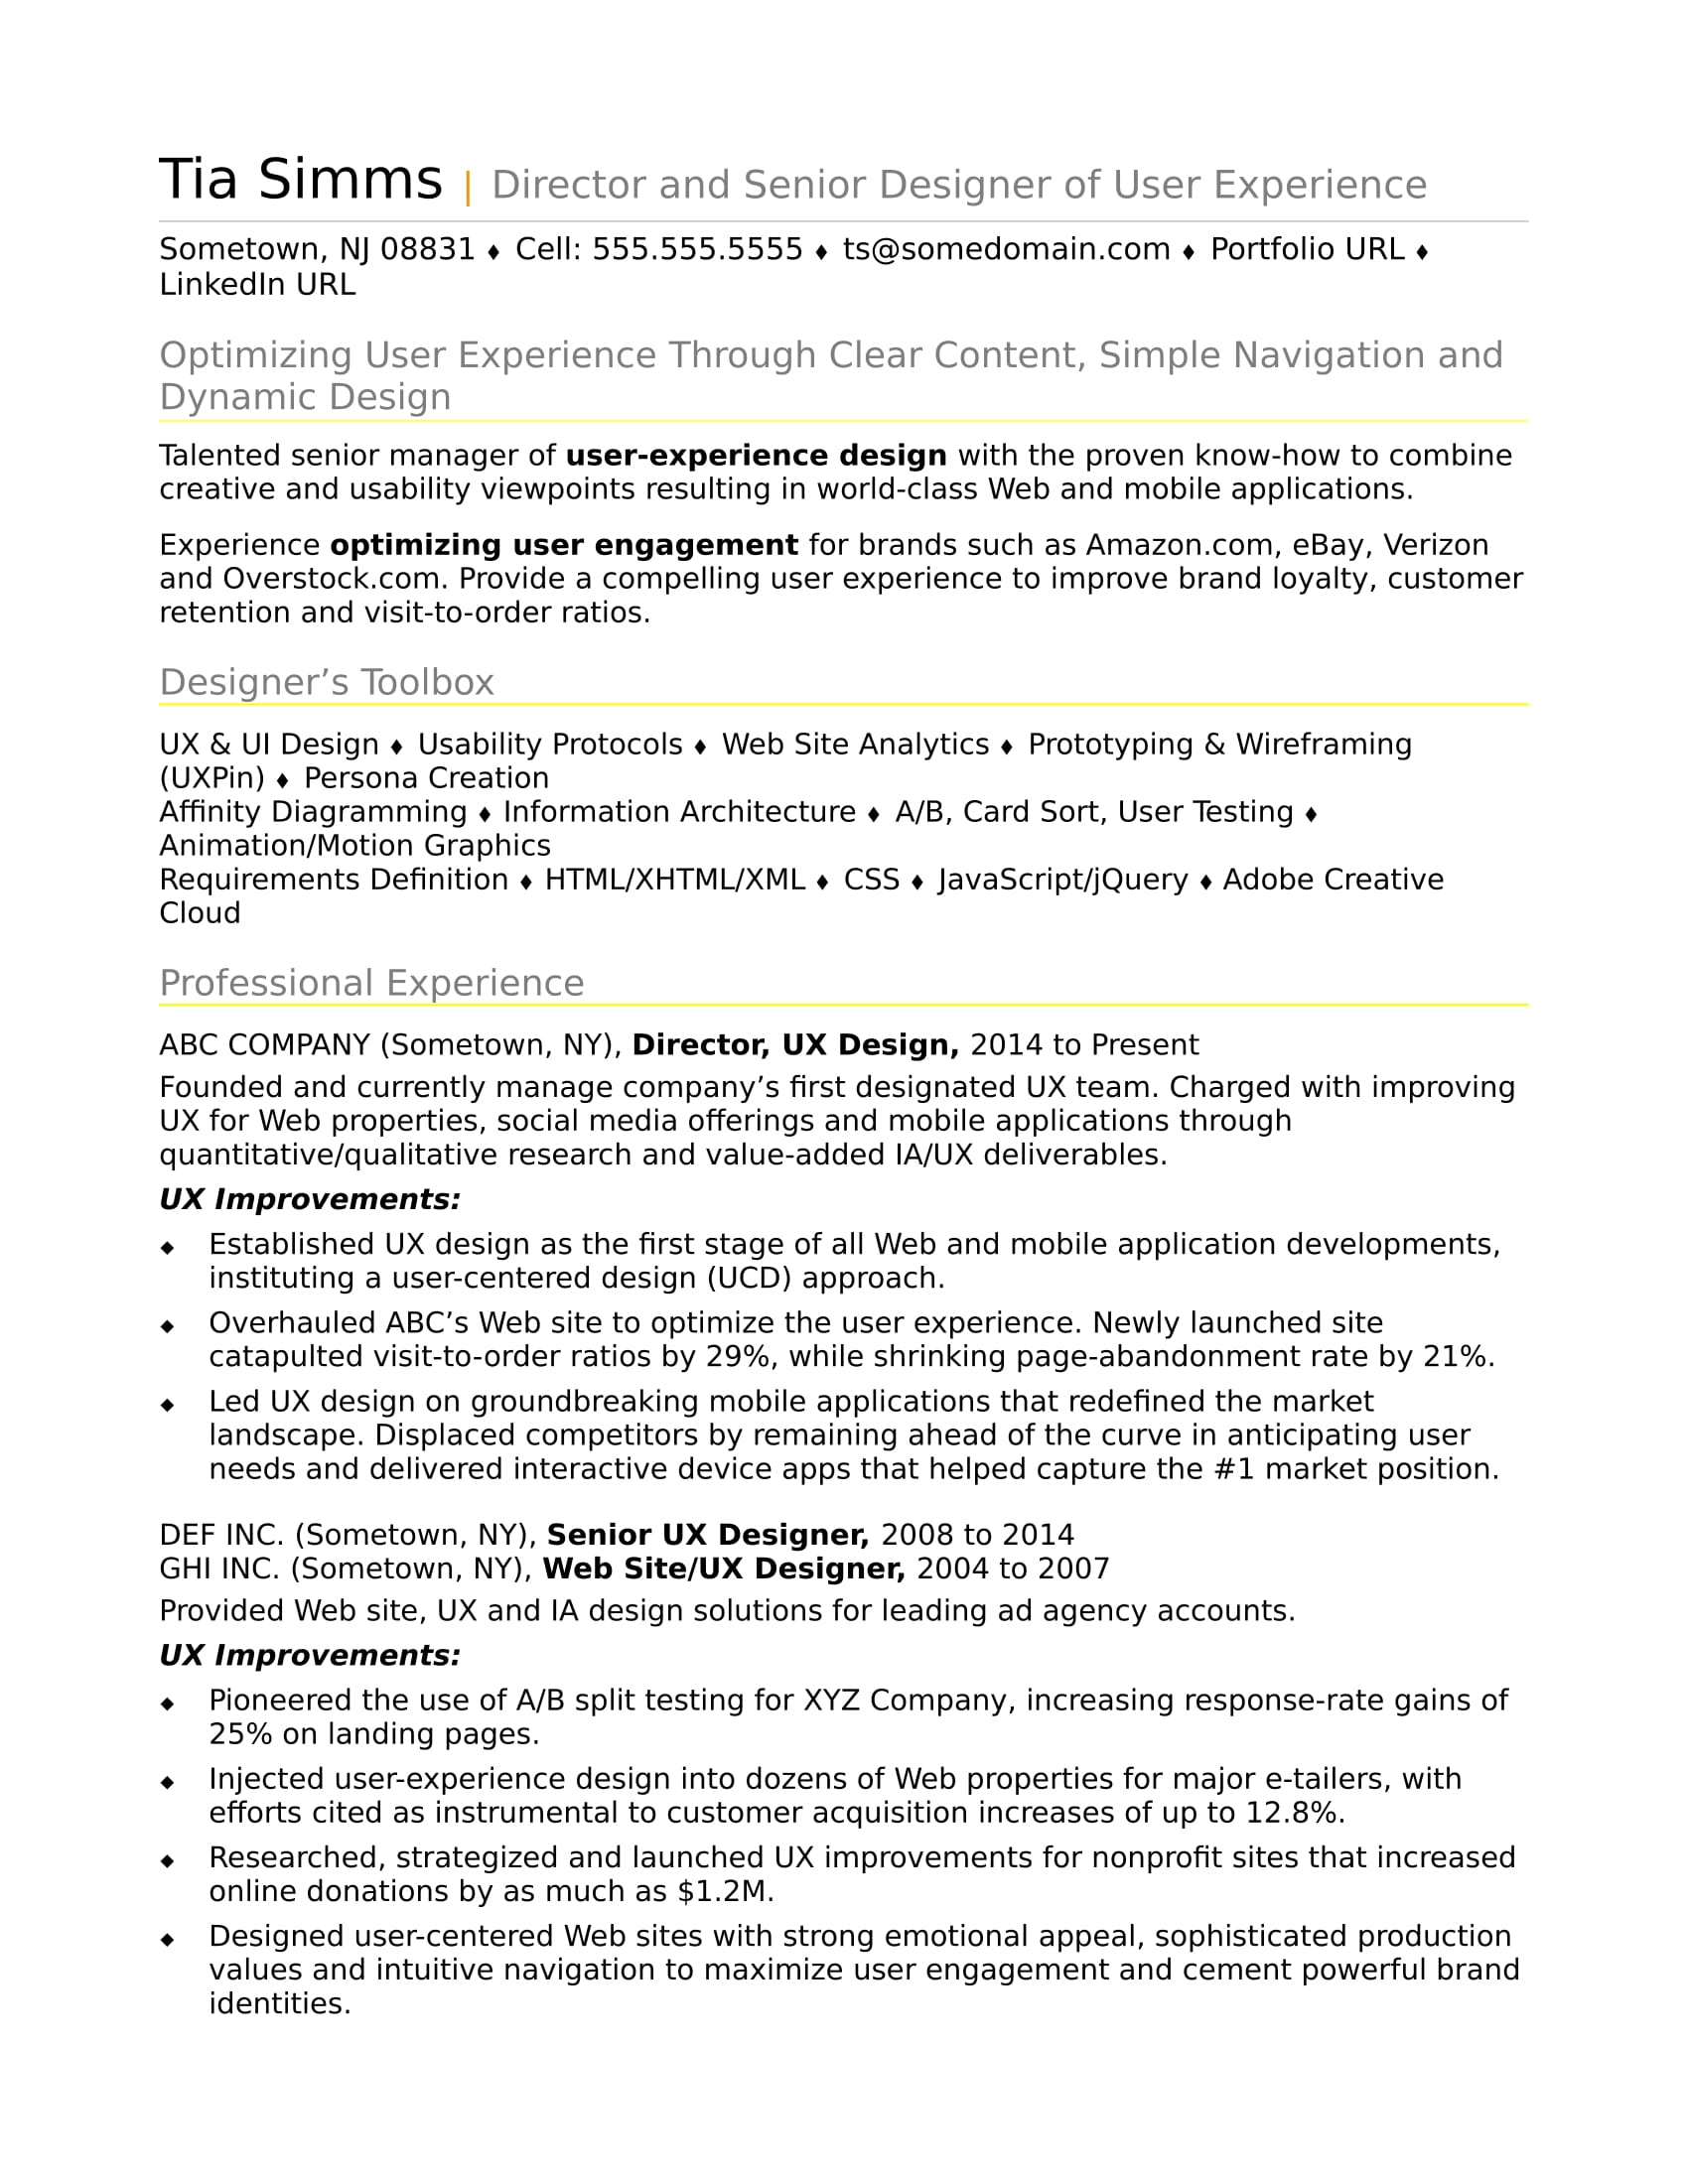 Sample resume for an experienced ux designer monster sample resume for an experienced ux designer madrichimfo Image collections